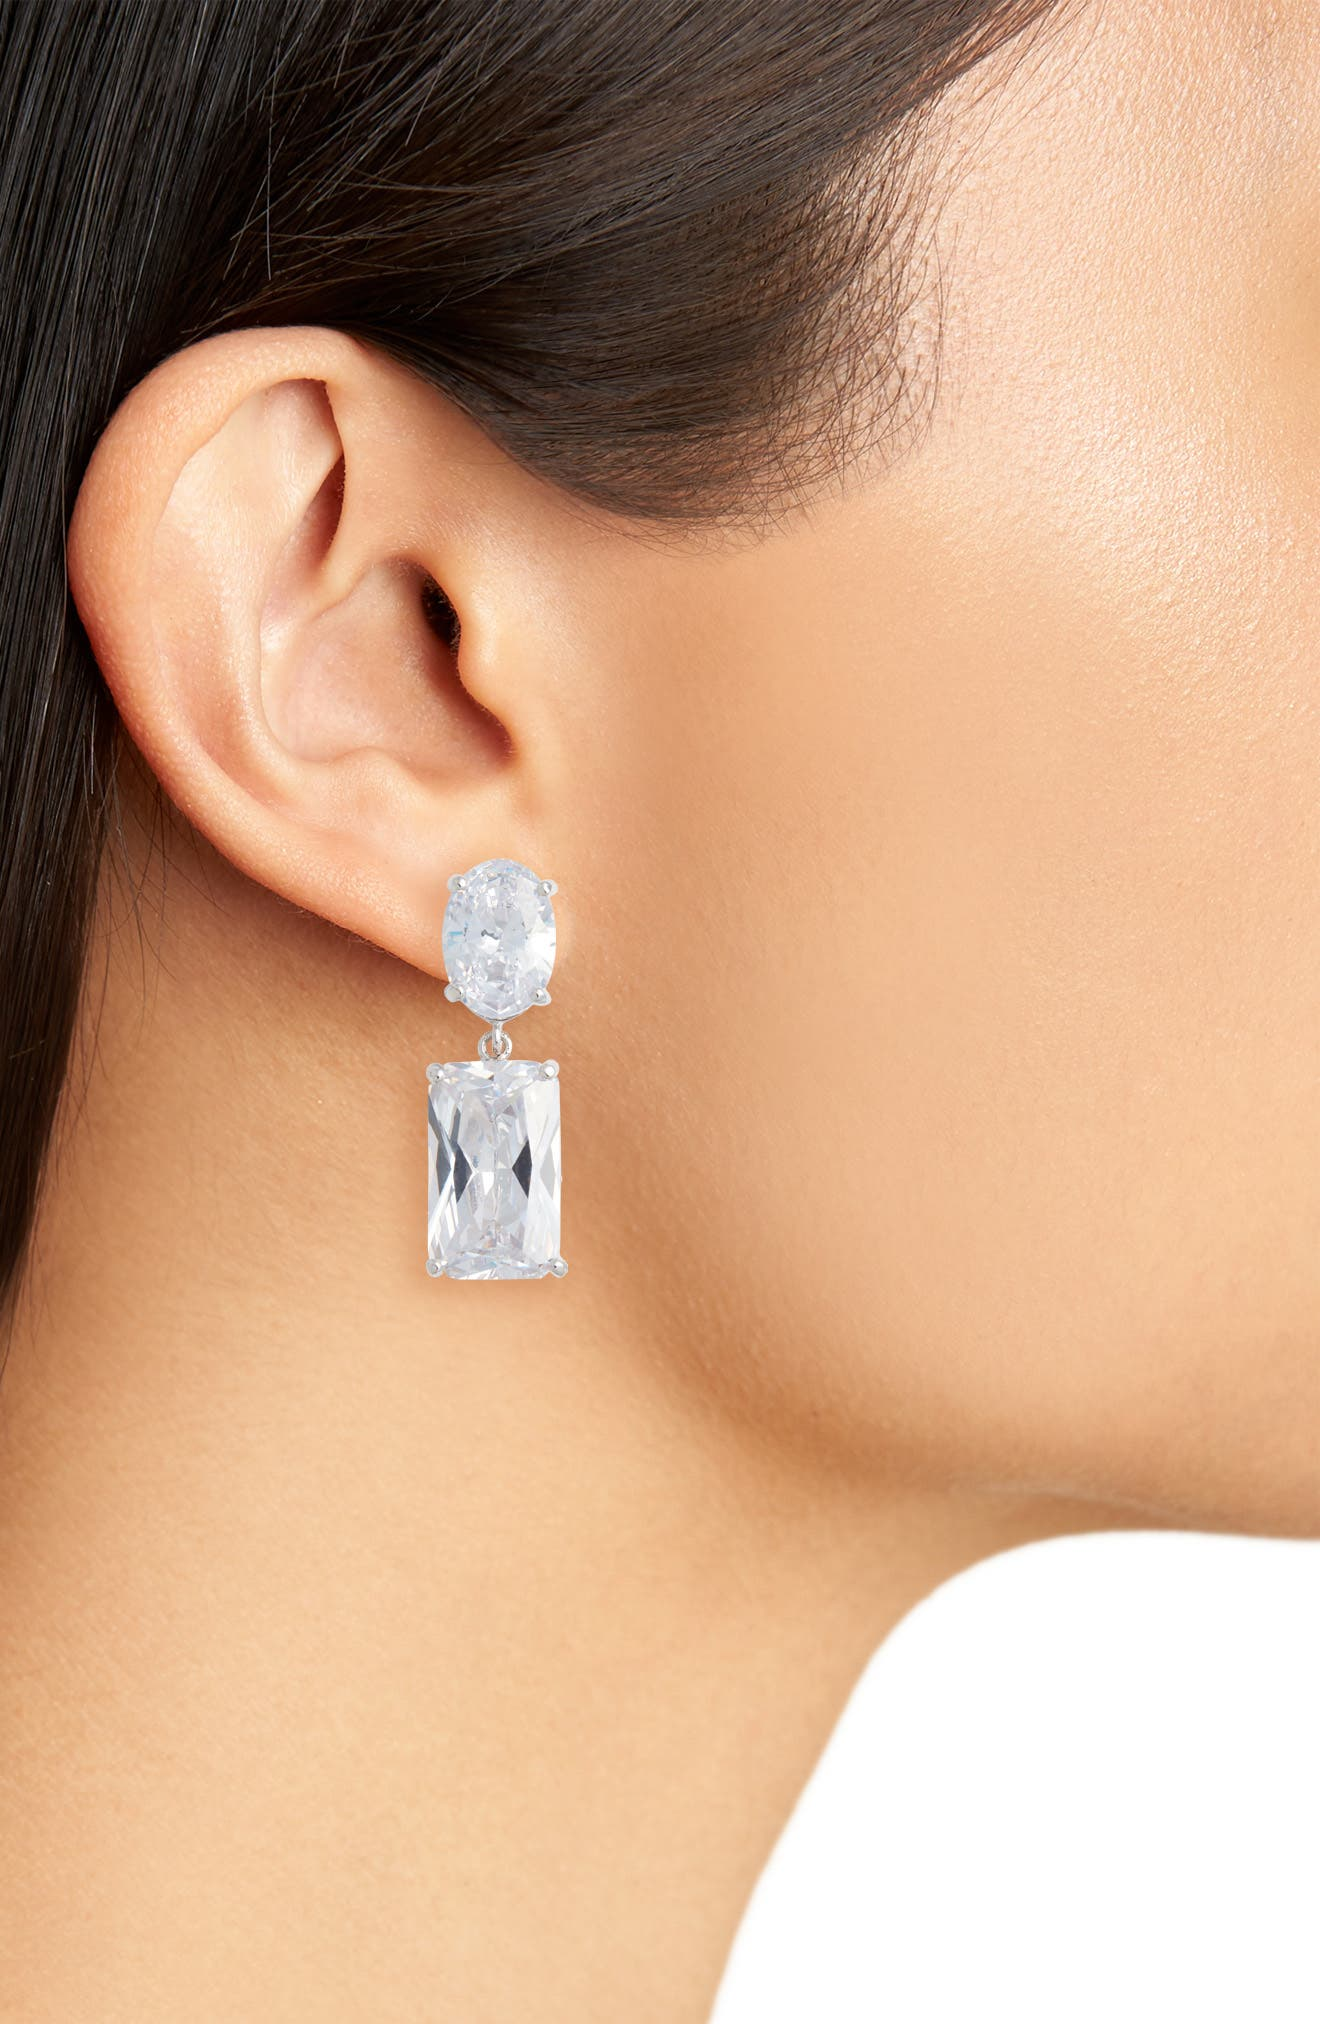 Rock Candy Drop Earrings,                             Alternate thumbnail 2, color,                             SILVER/ WHITE CZ